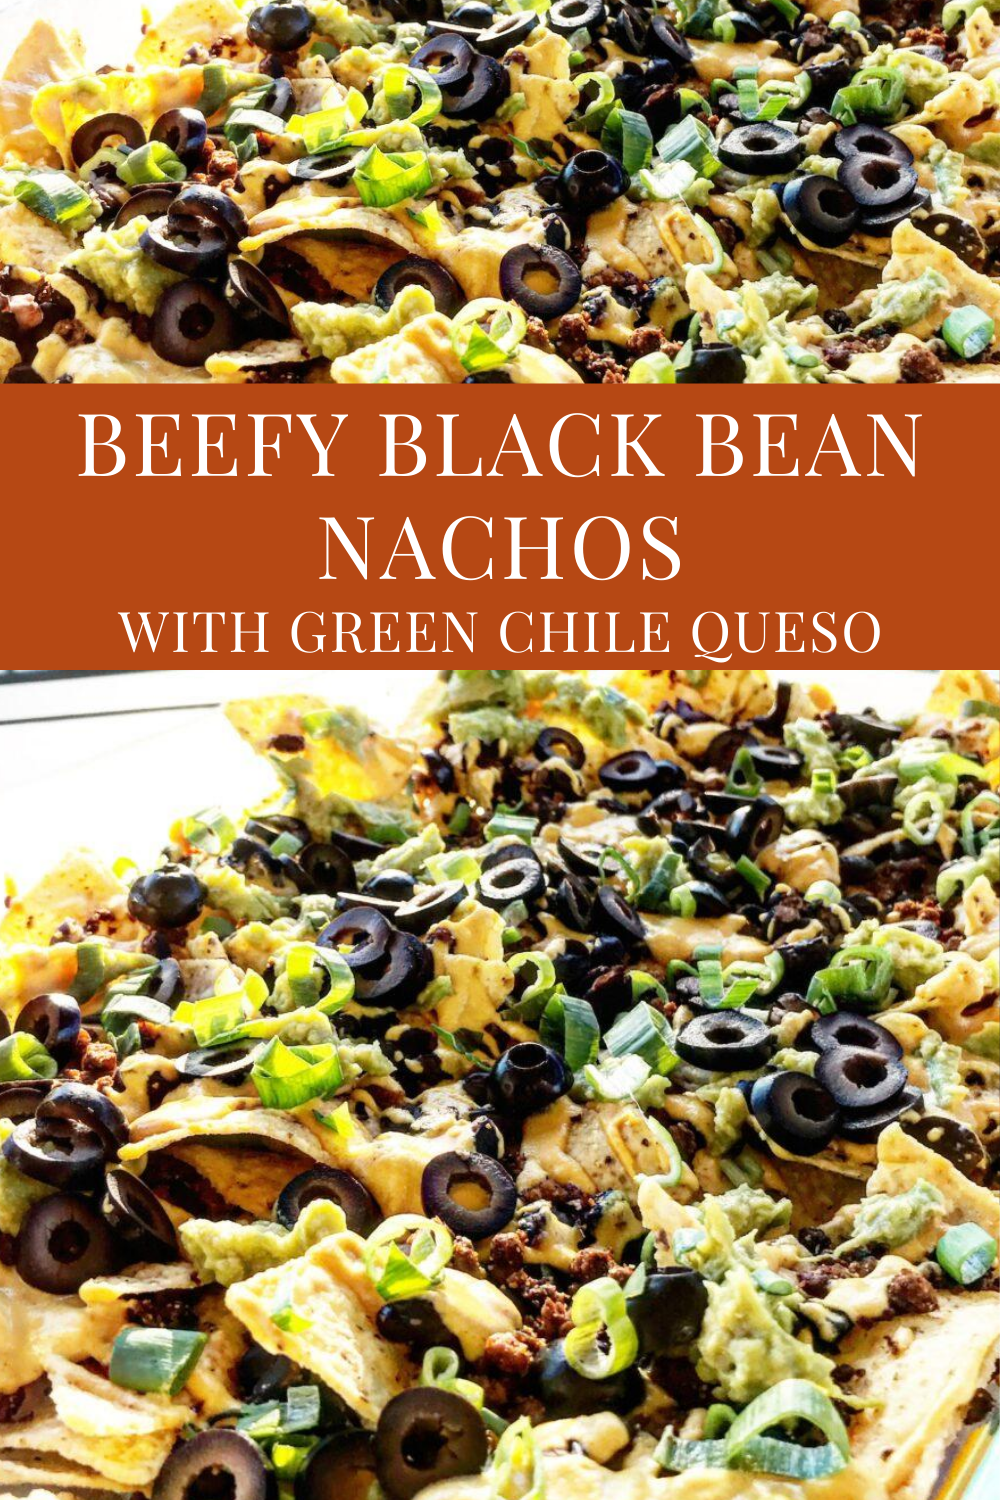 Beefy Black Bean Nachos ~ Easy to make and always a crowd-pleaser! These loaded vegan nachos drizzled with dairy-free Green Chile Queso are perfect for game day snacking. via @thiswifecooks